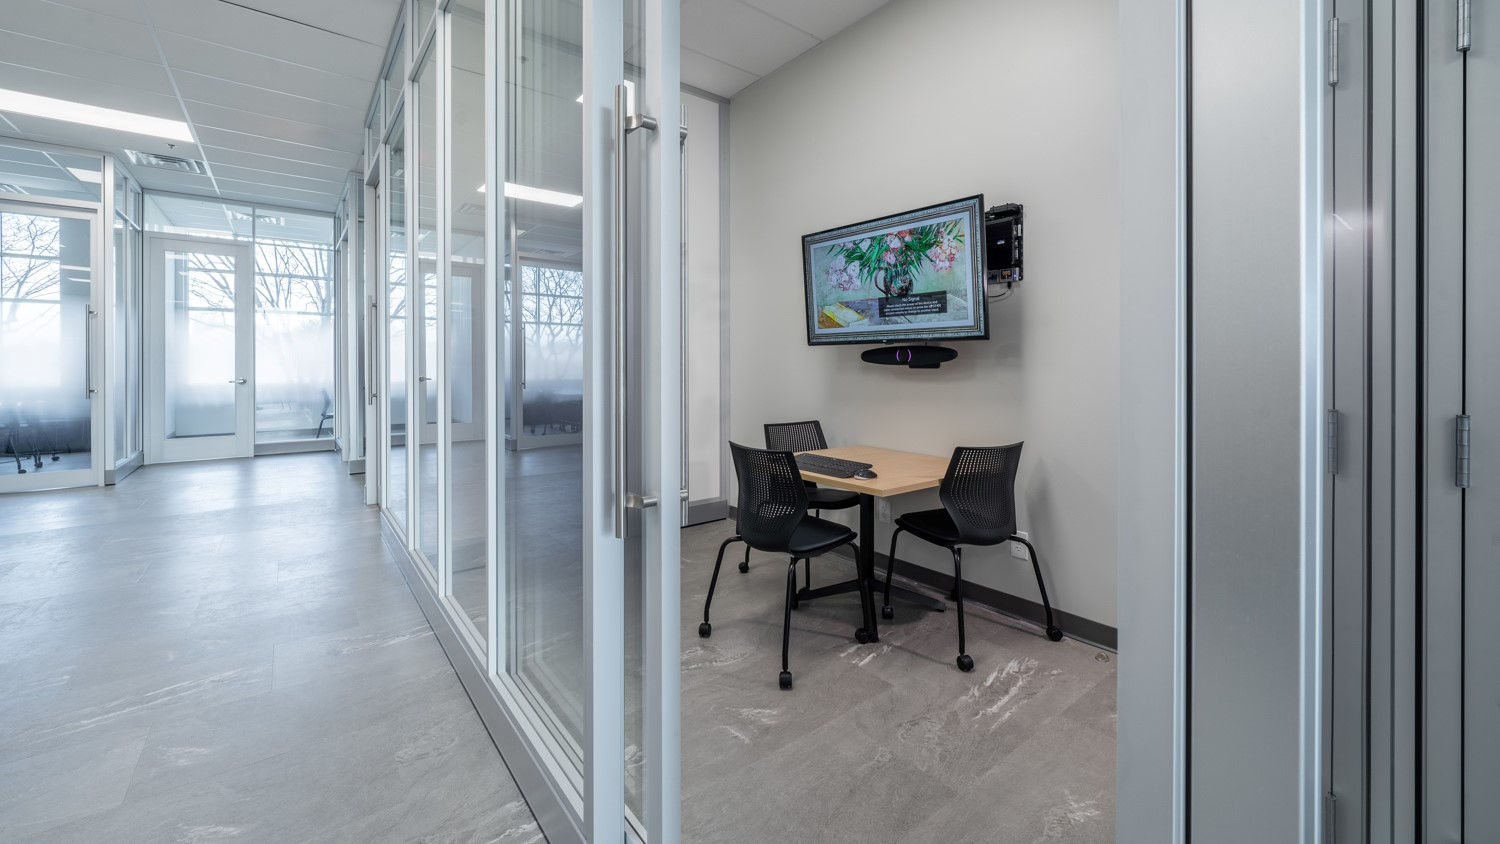 A office huddle space with demountable walls, table, chairs, and technology